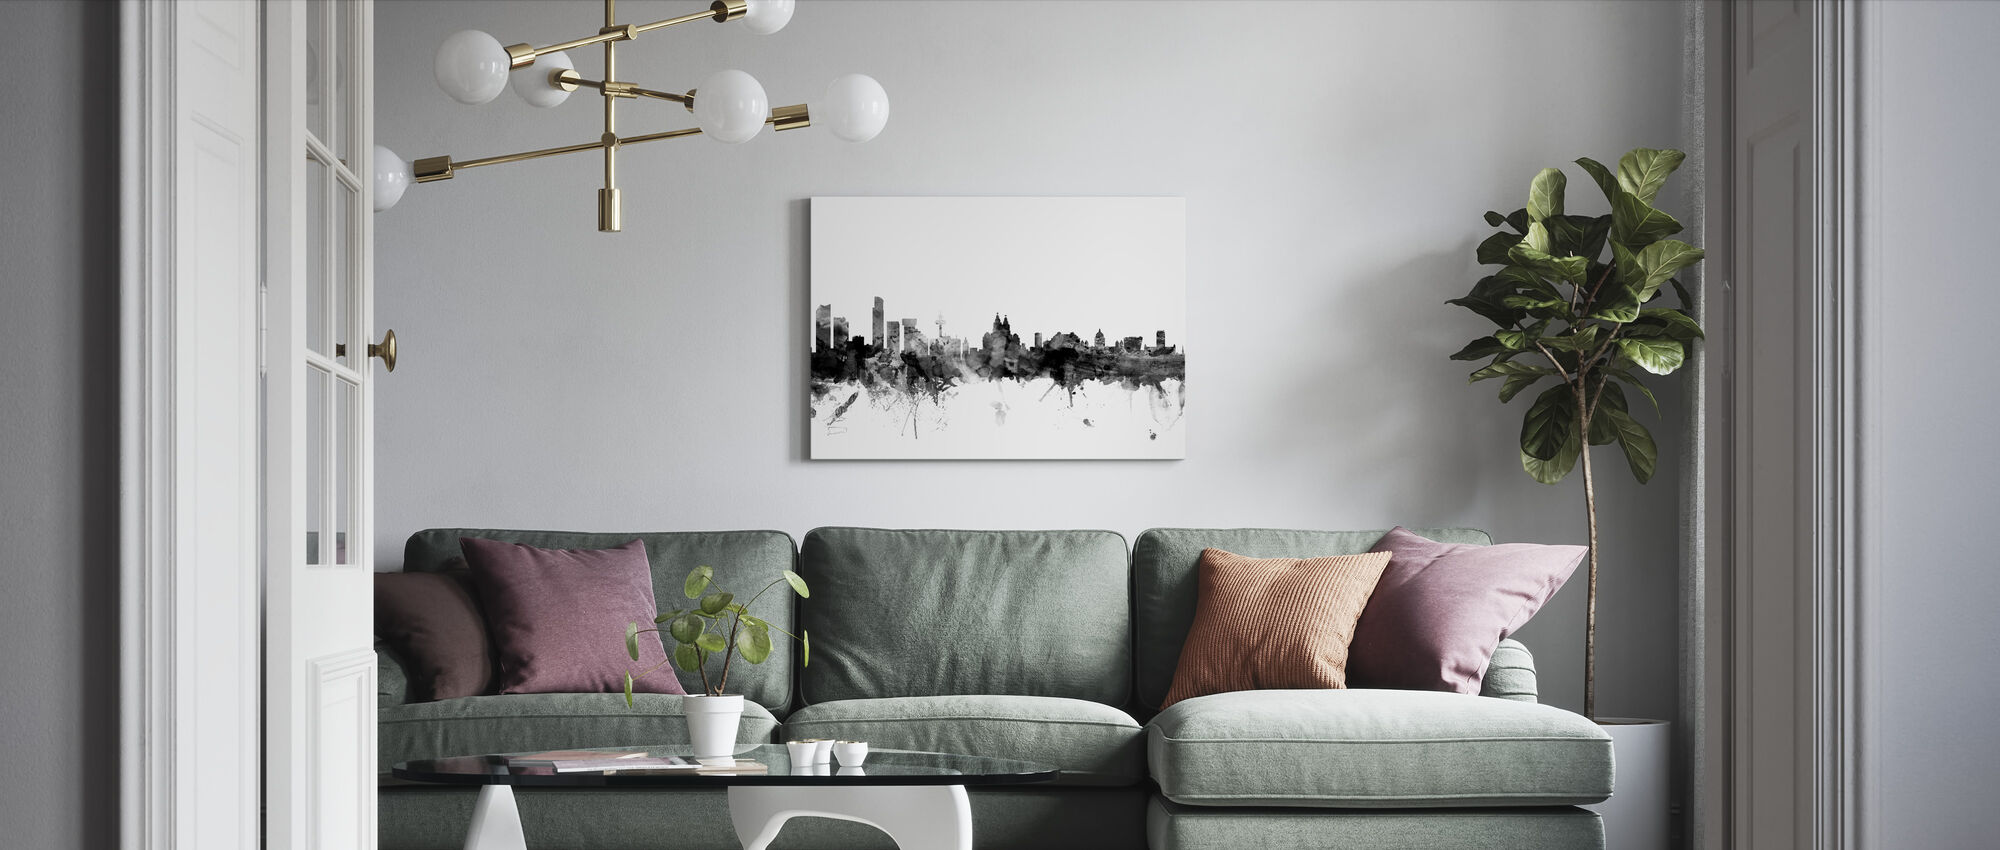 Liverpool UK Skyline Black - Canvas print - Living Room